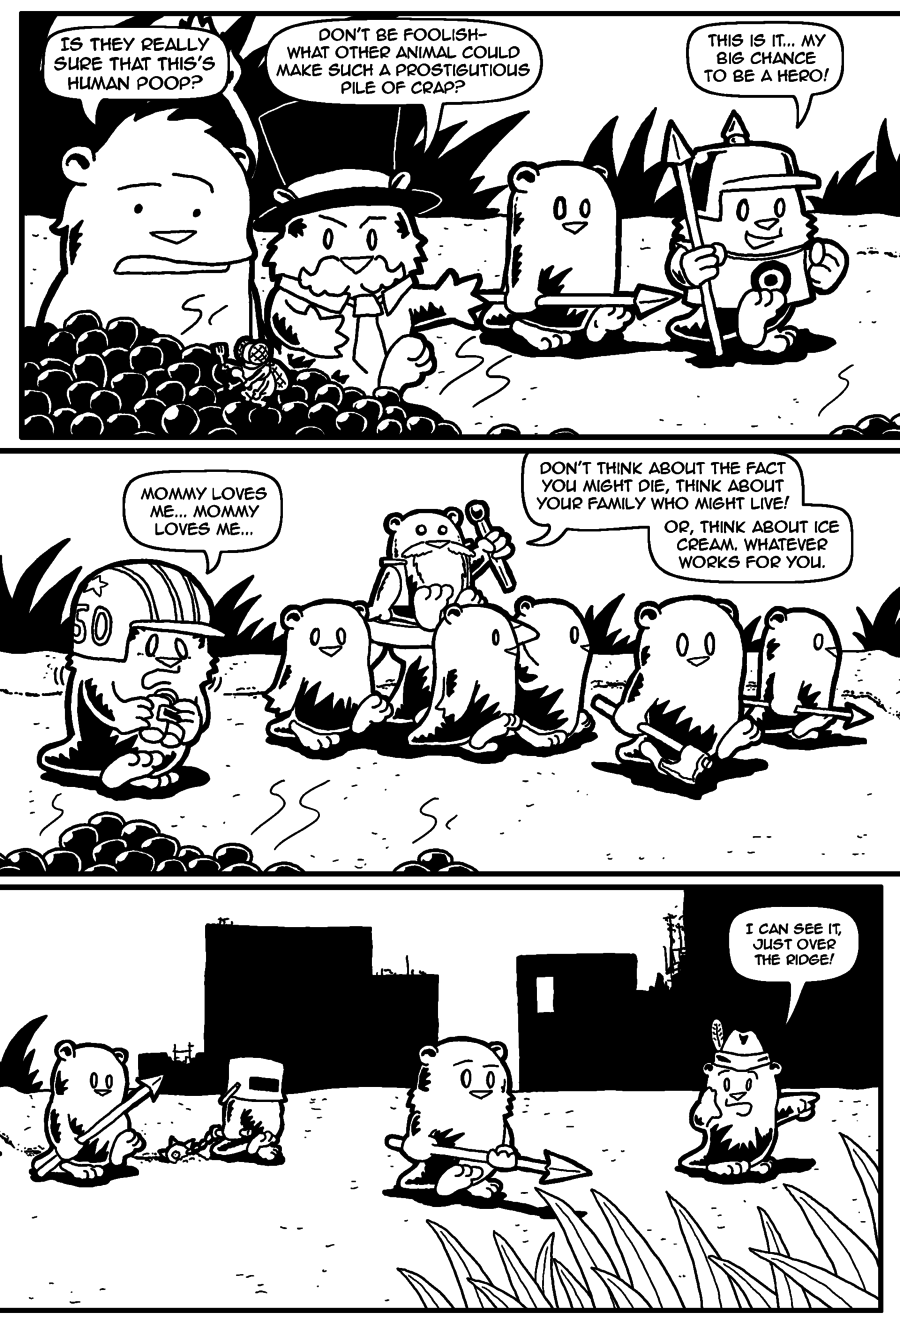 The Last Human Alive, Page 15